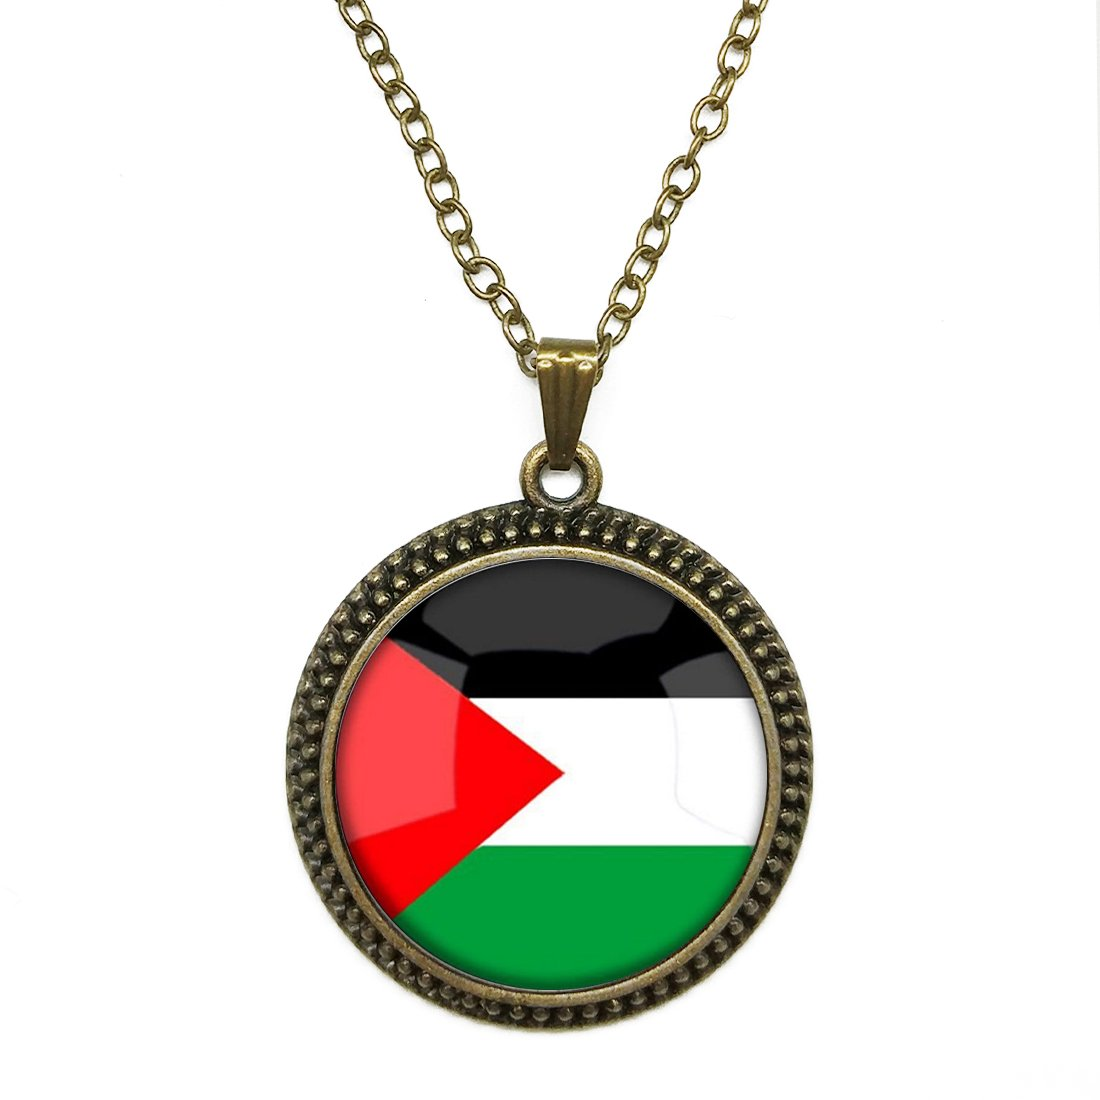 Fashion Necklace Pendant Jewelry The Hashemite Kingdom of Jordan National Flag Glass Dome Cabochon Steampunk Bronze Necklace